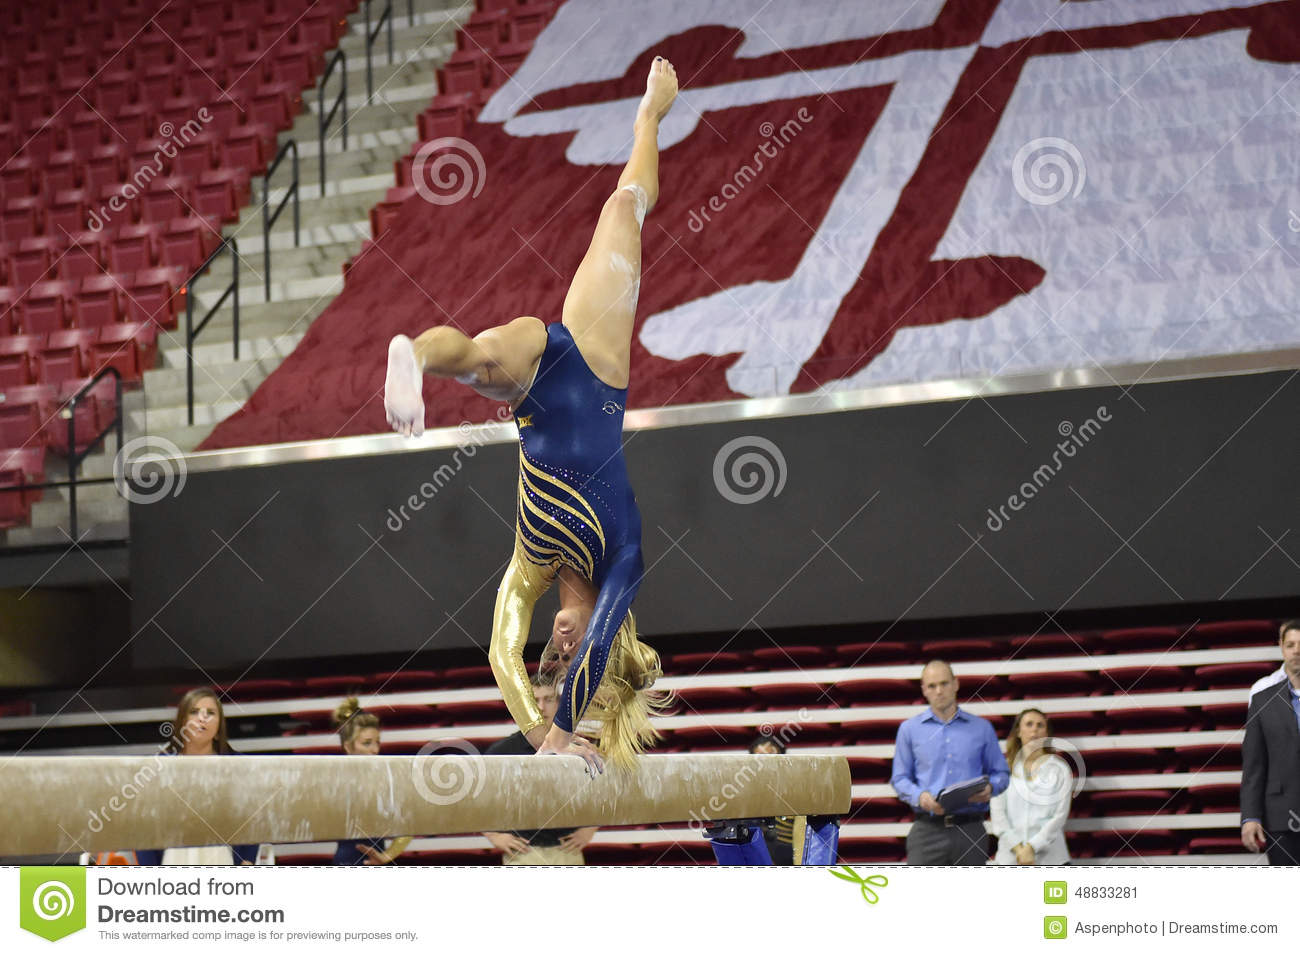 2015 NCAA Ladies Gymnastics - WVU Editorial Photo - Image: 48833281